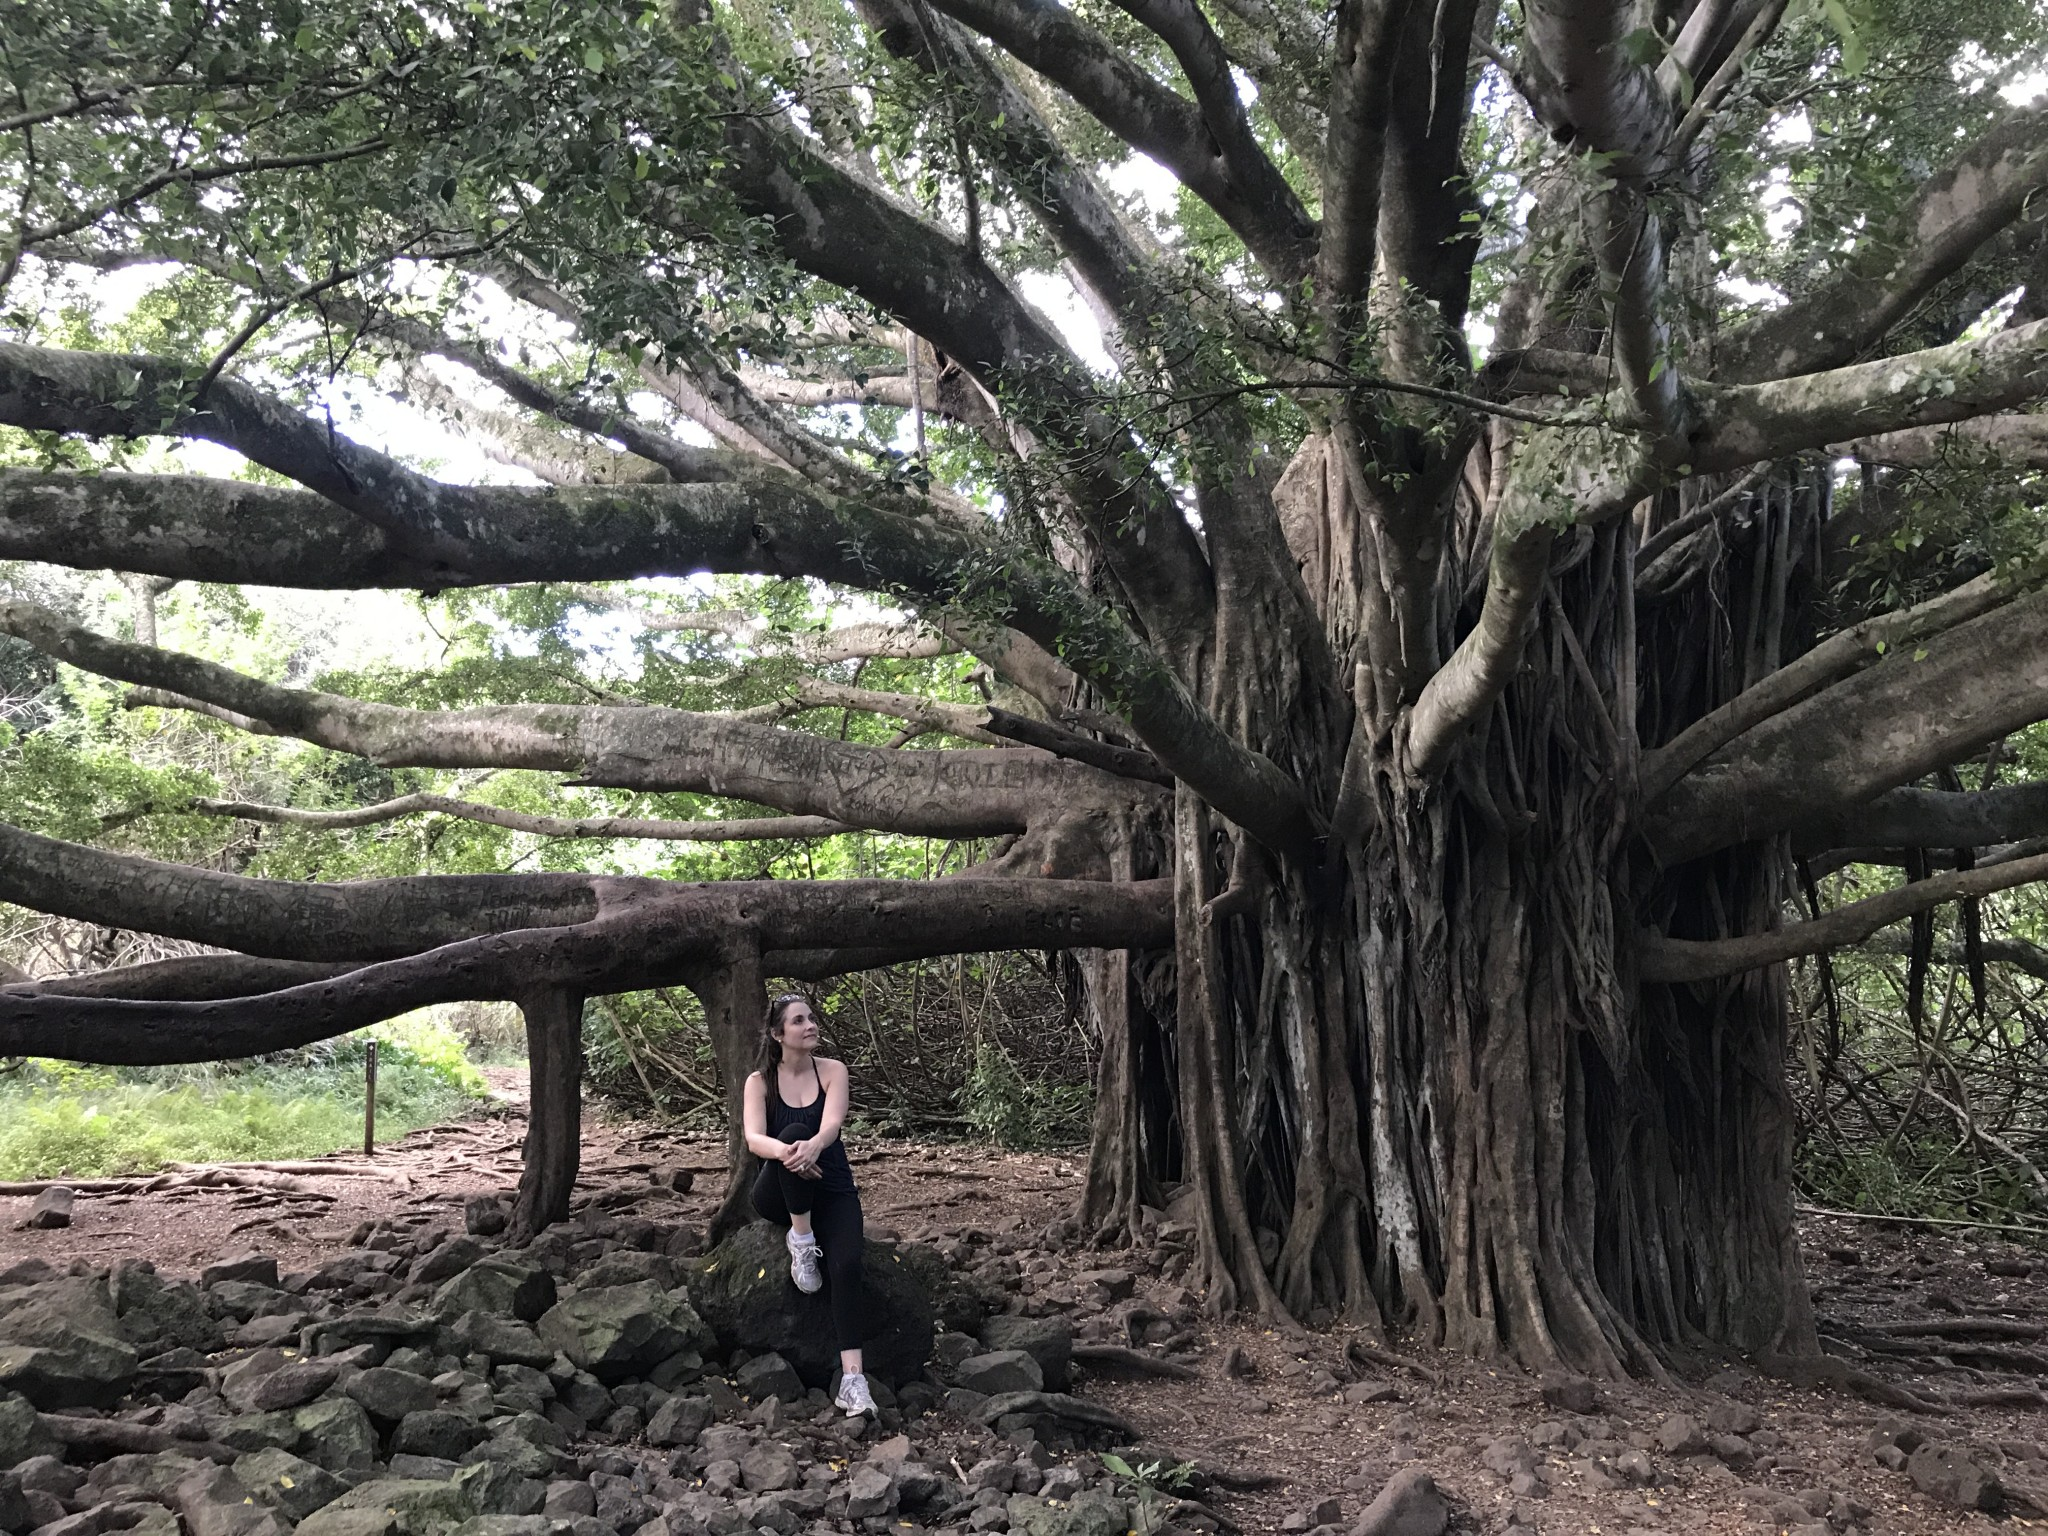 banyan tree, road to hana, haleakala national park, the-alyst.com